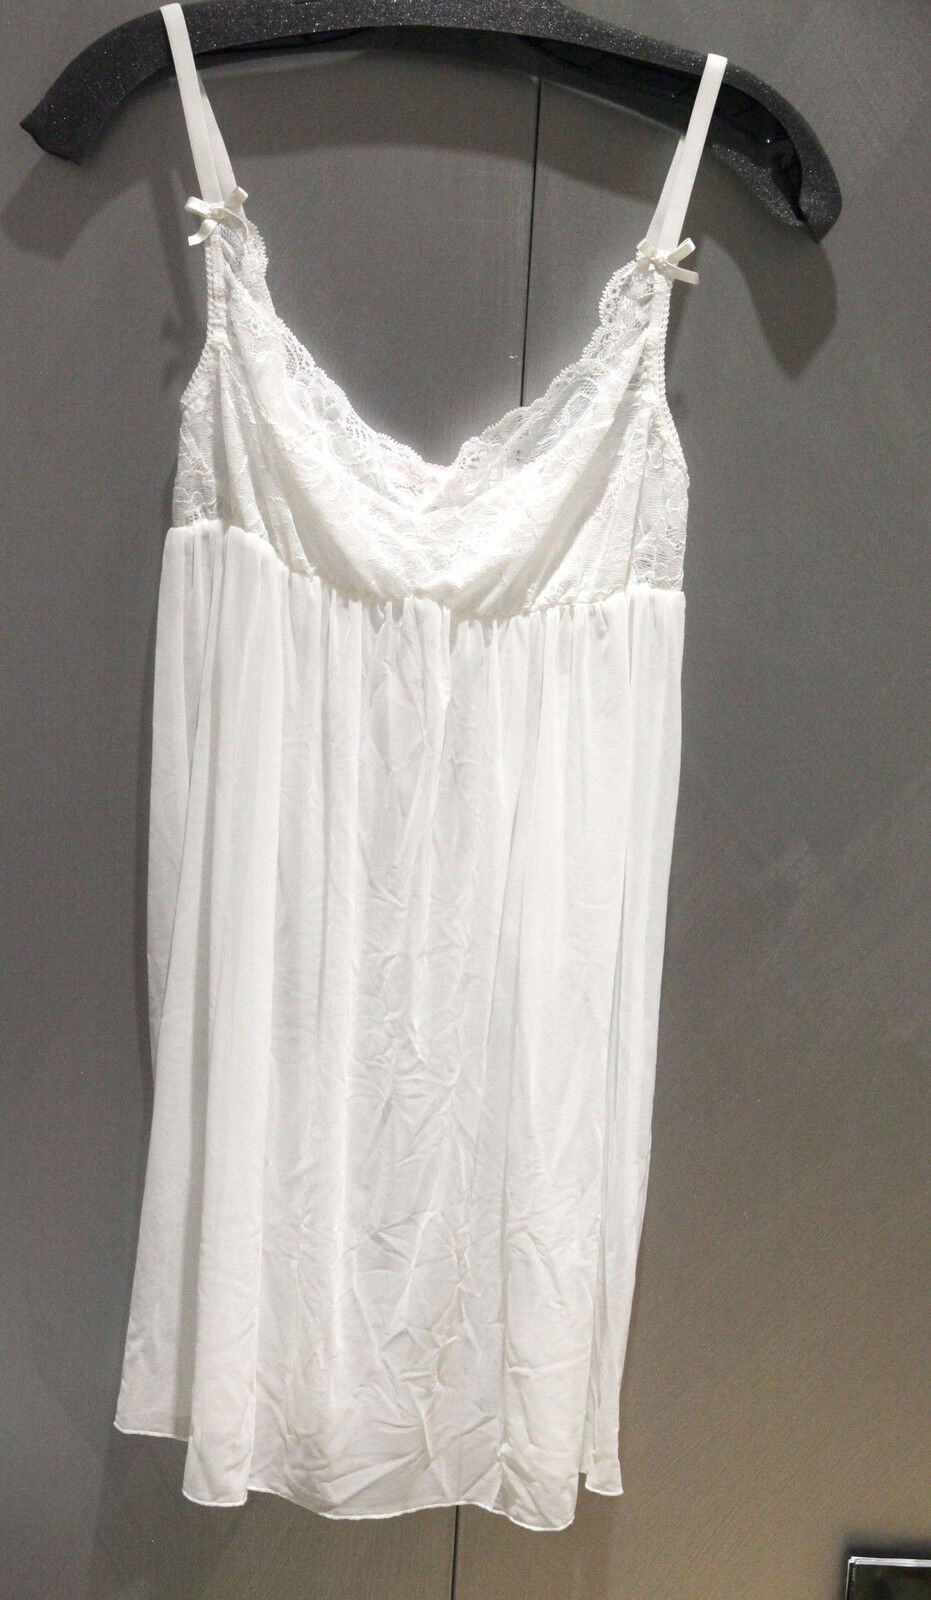 NWT Fleur't Womens White Lace Bodice Babydoll with Thong sz L FS